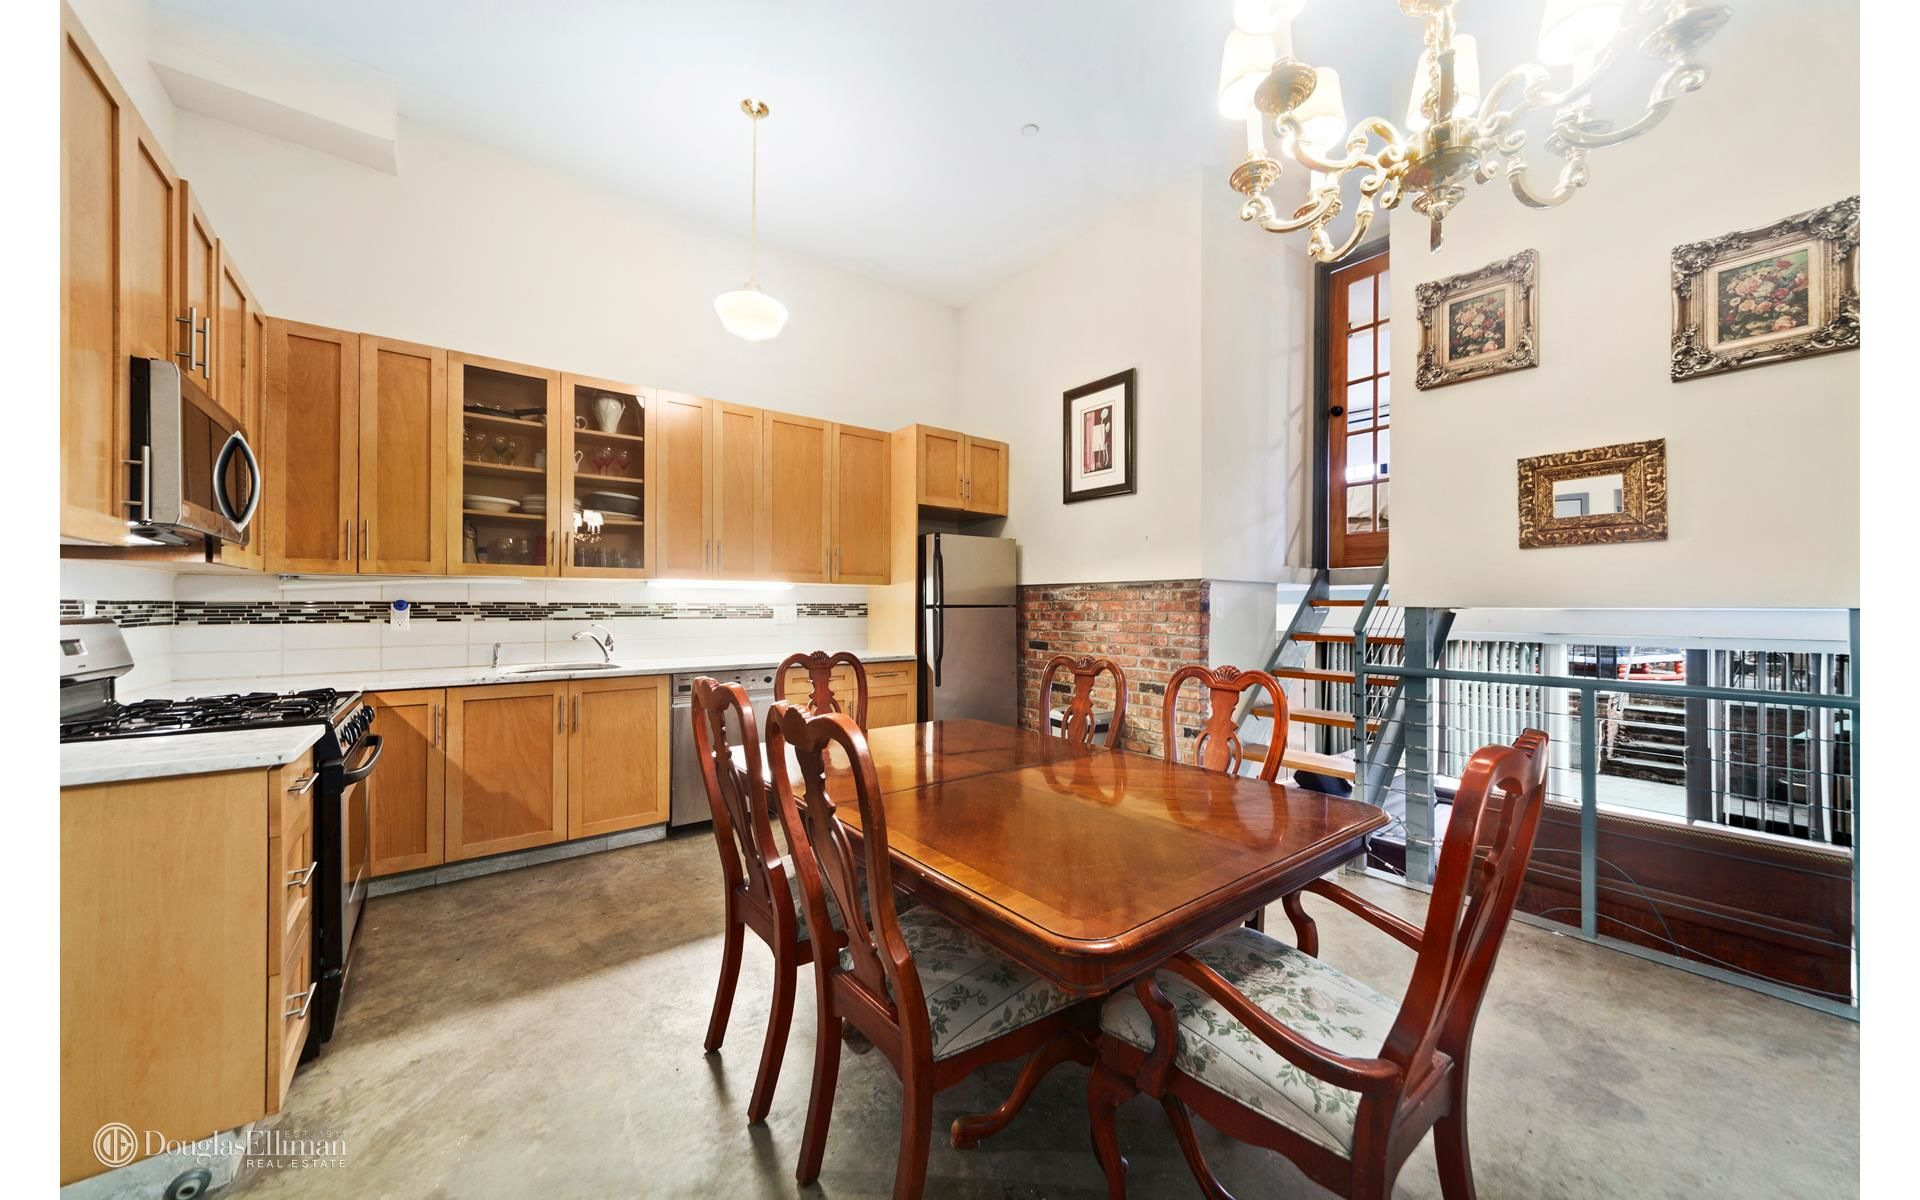 37 Carroll St Photo 1 - ELLIMAN-2614114